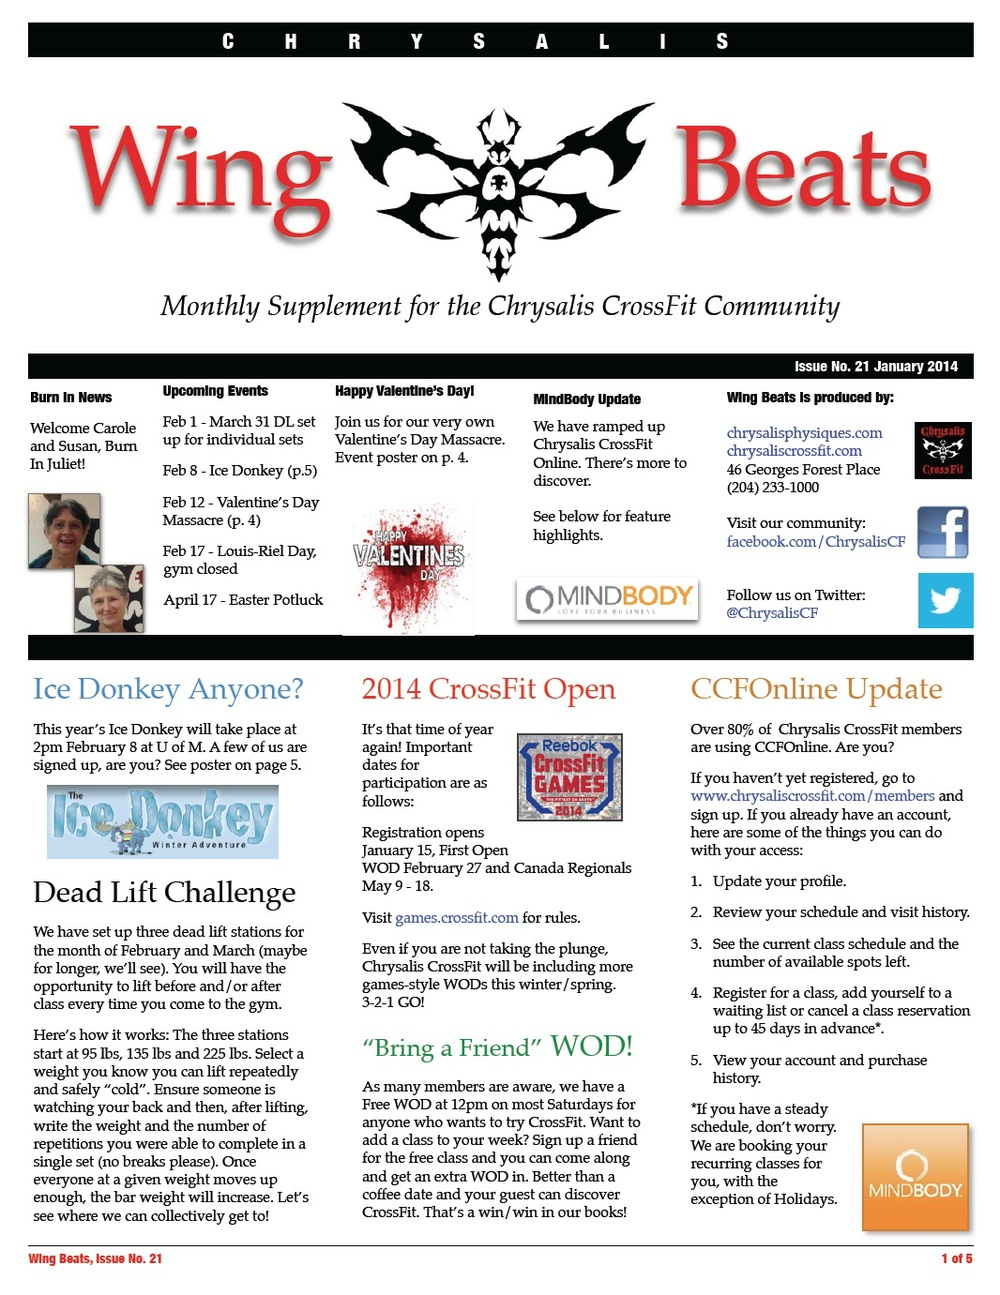 WingBeats Issue #21 - January 2014